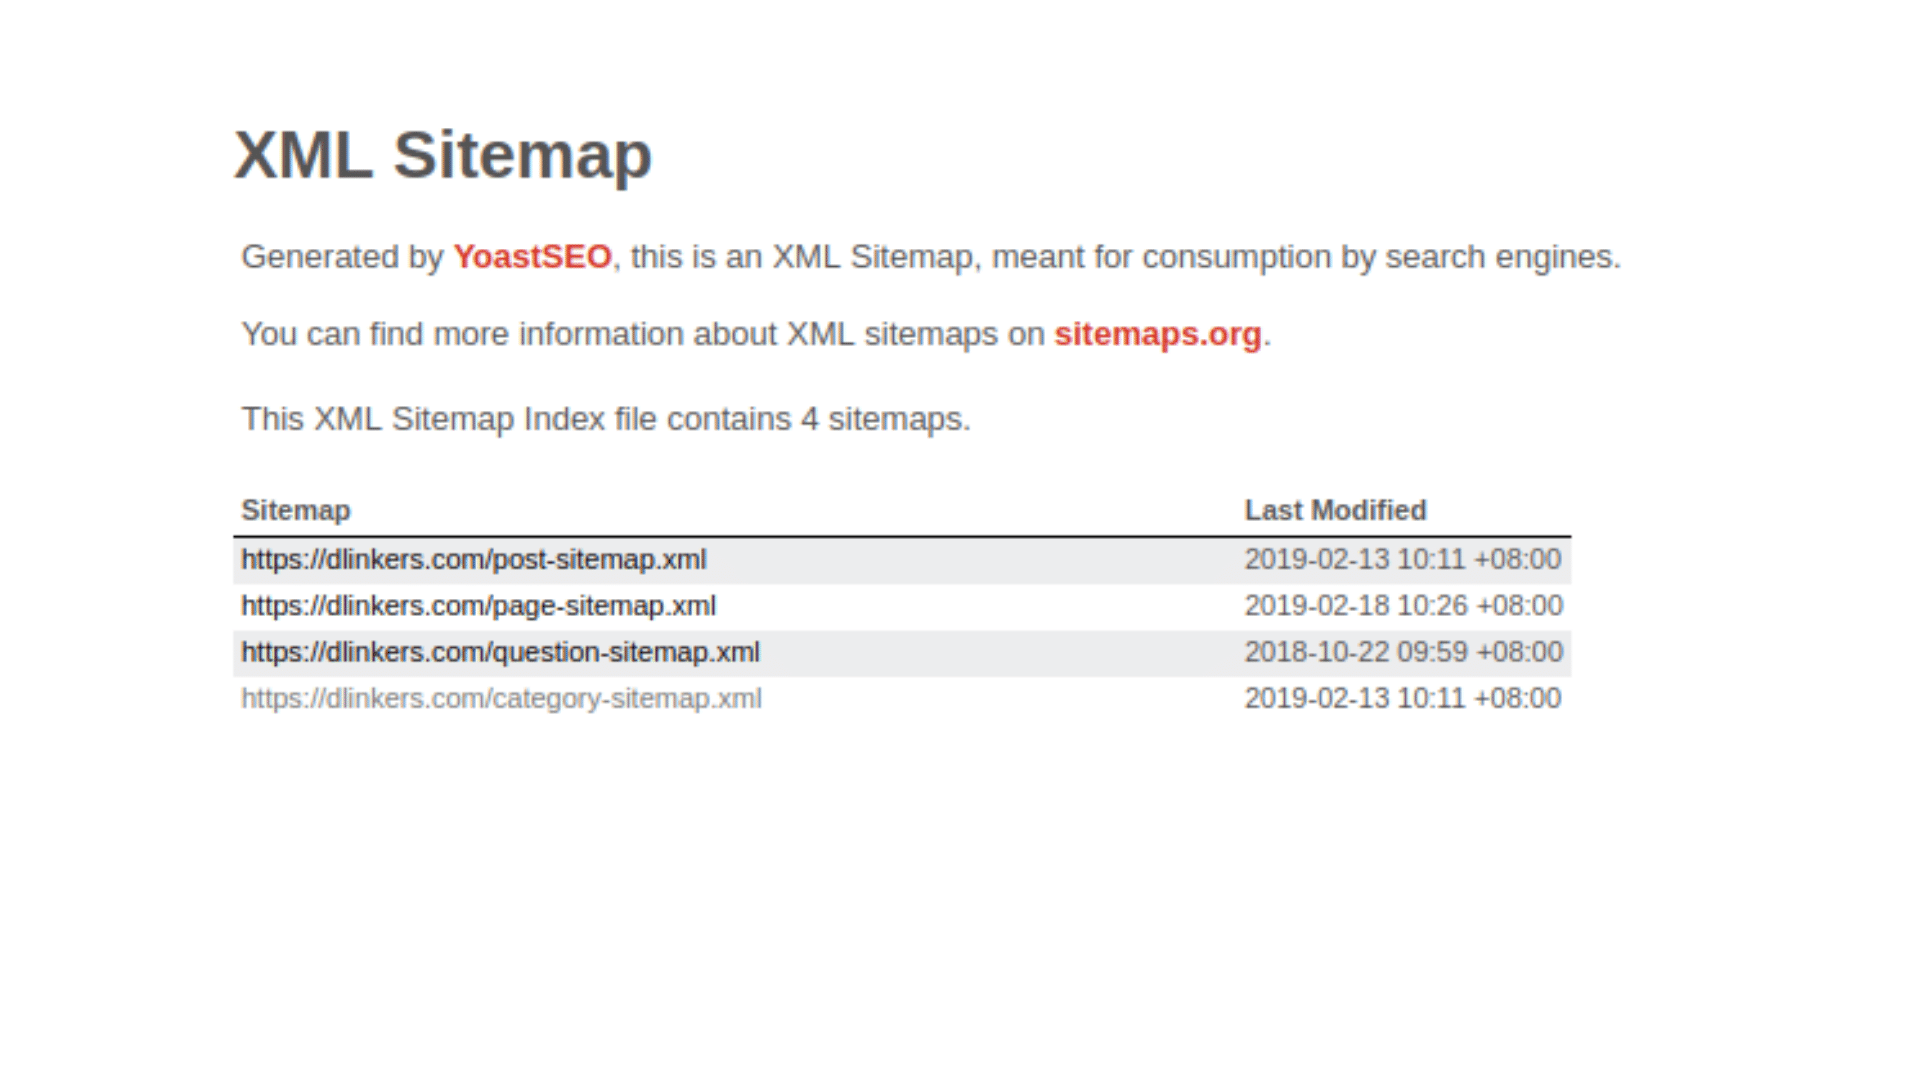 Yoast SEO Vs Google XML Sitemap: Which Is The Ideal XML